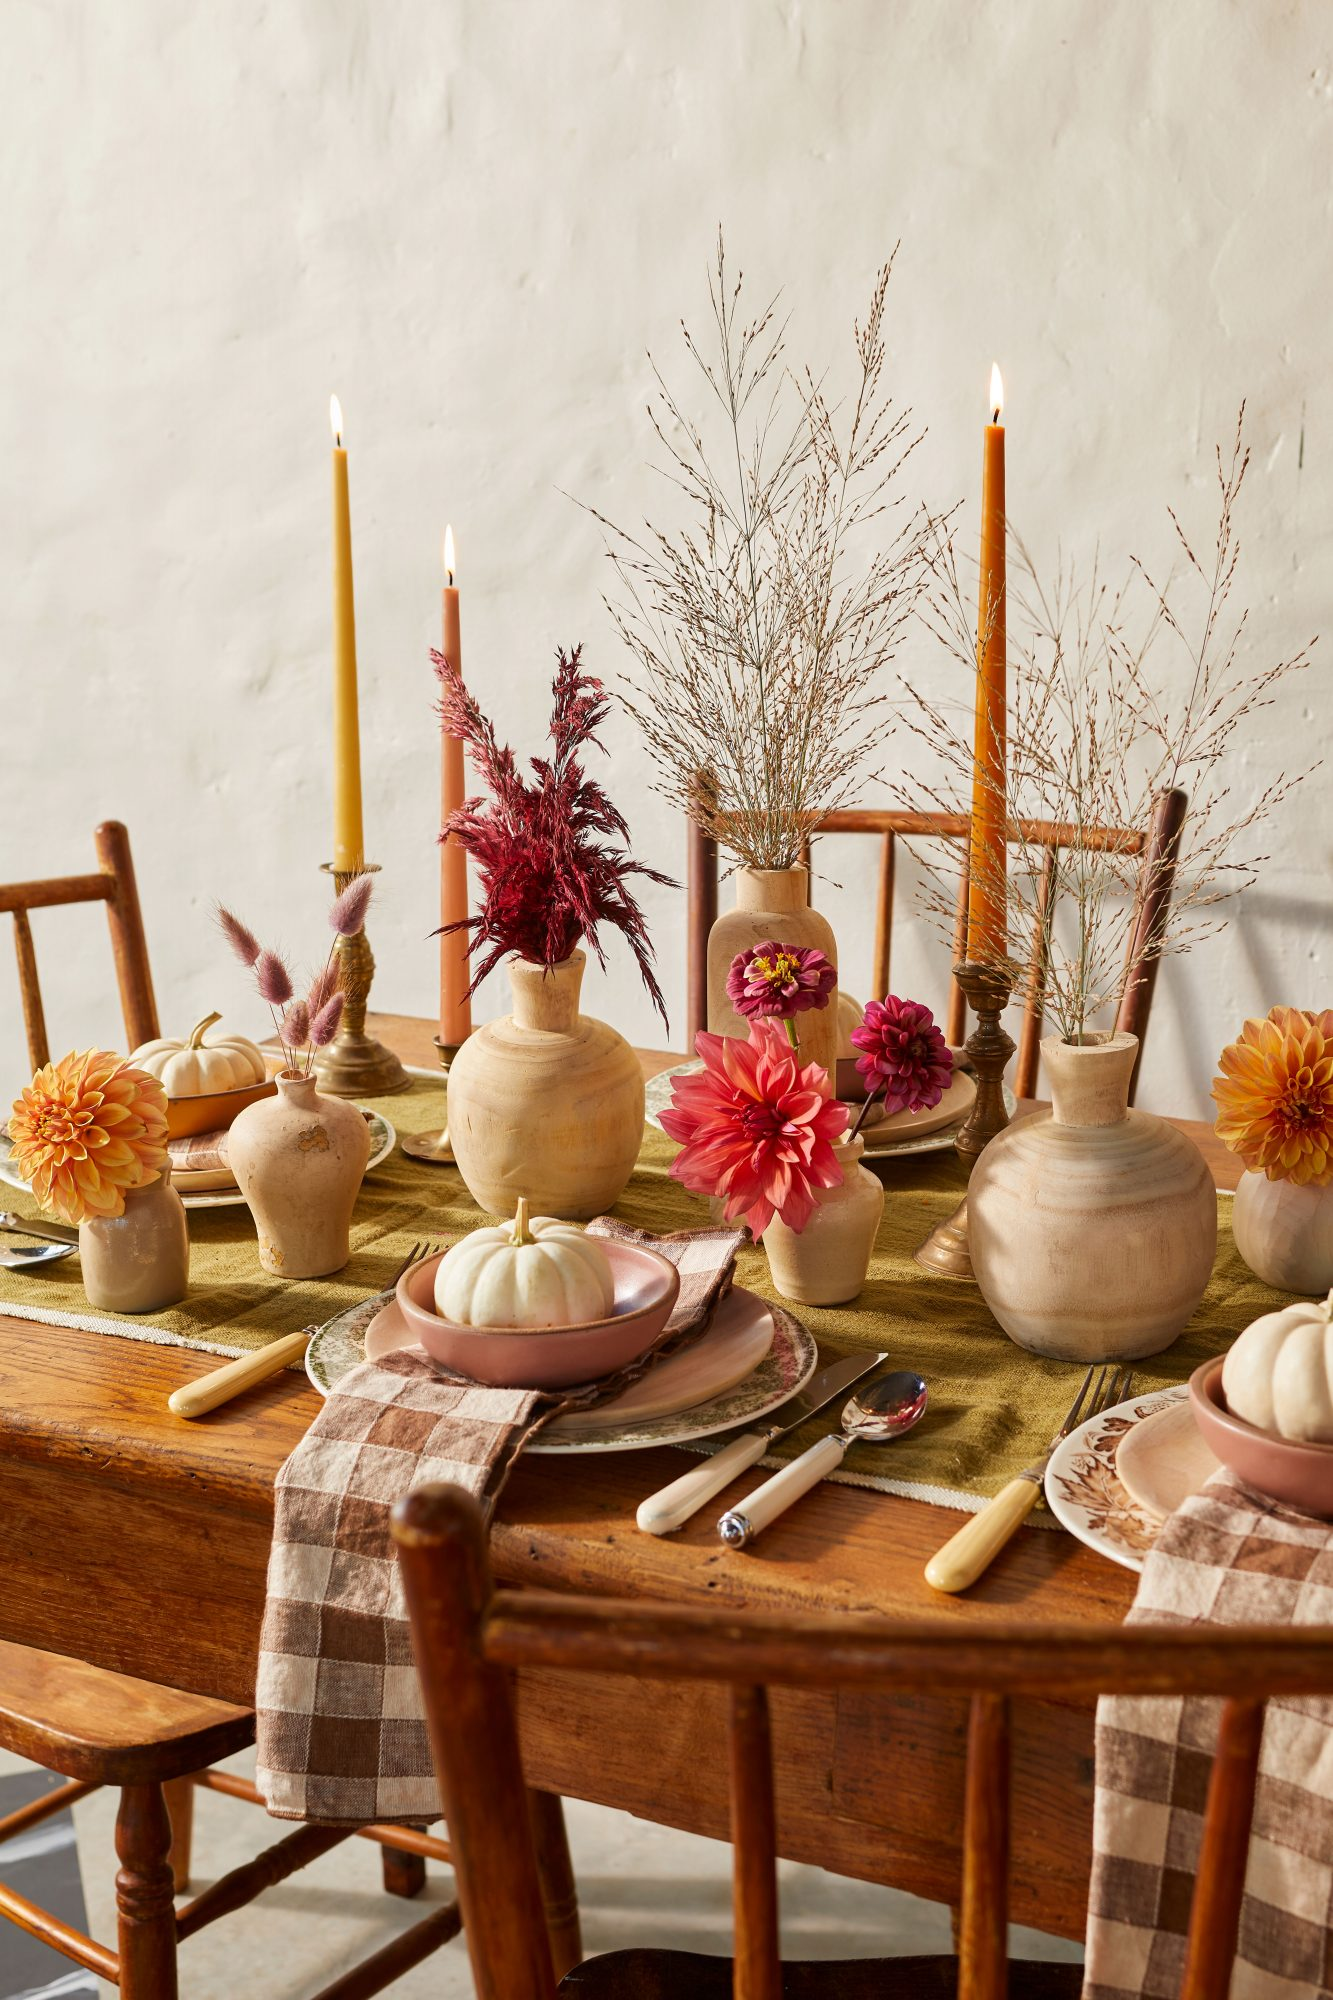 Fall Tablescape with like-toned vessels, dahlias, zinnias, and pampas grass